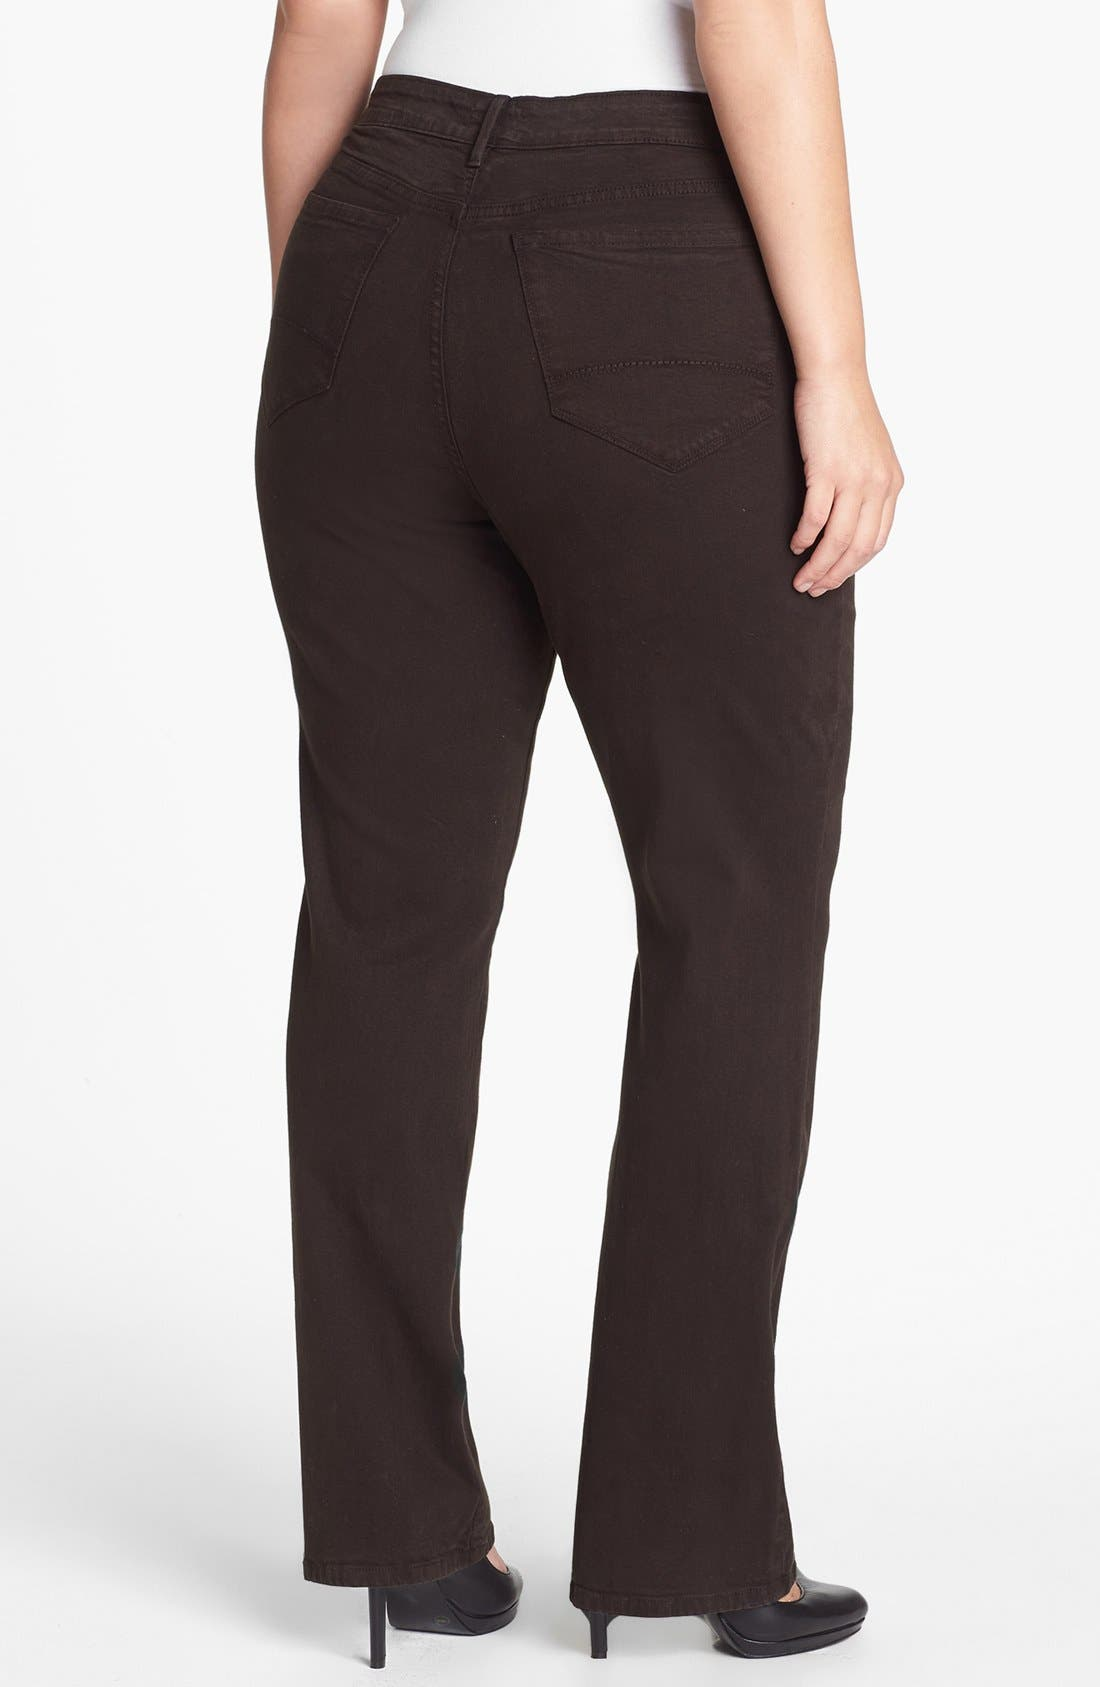 Alternate Image 2  - NYDJ 'Marilyn' Colored Stretch Straight Jeans (Plus Size)